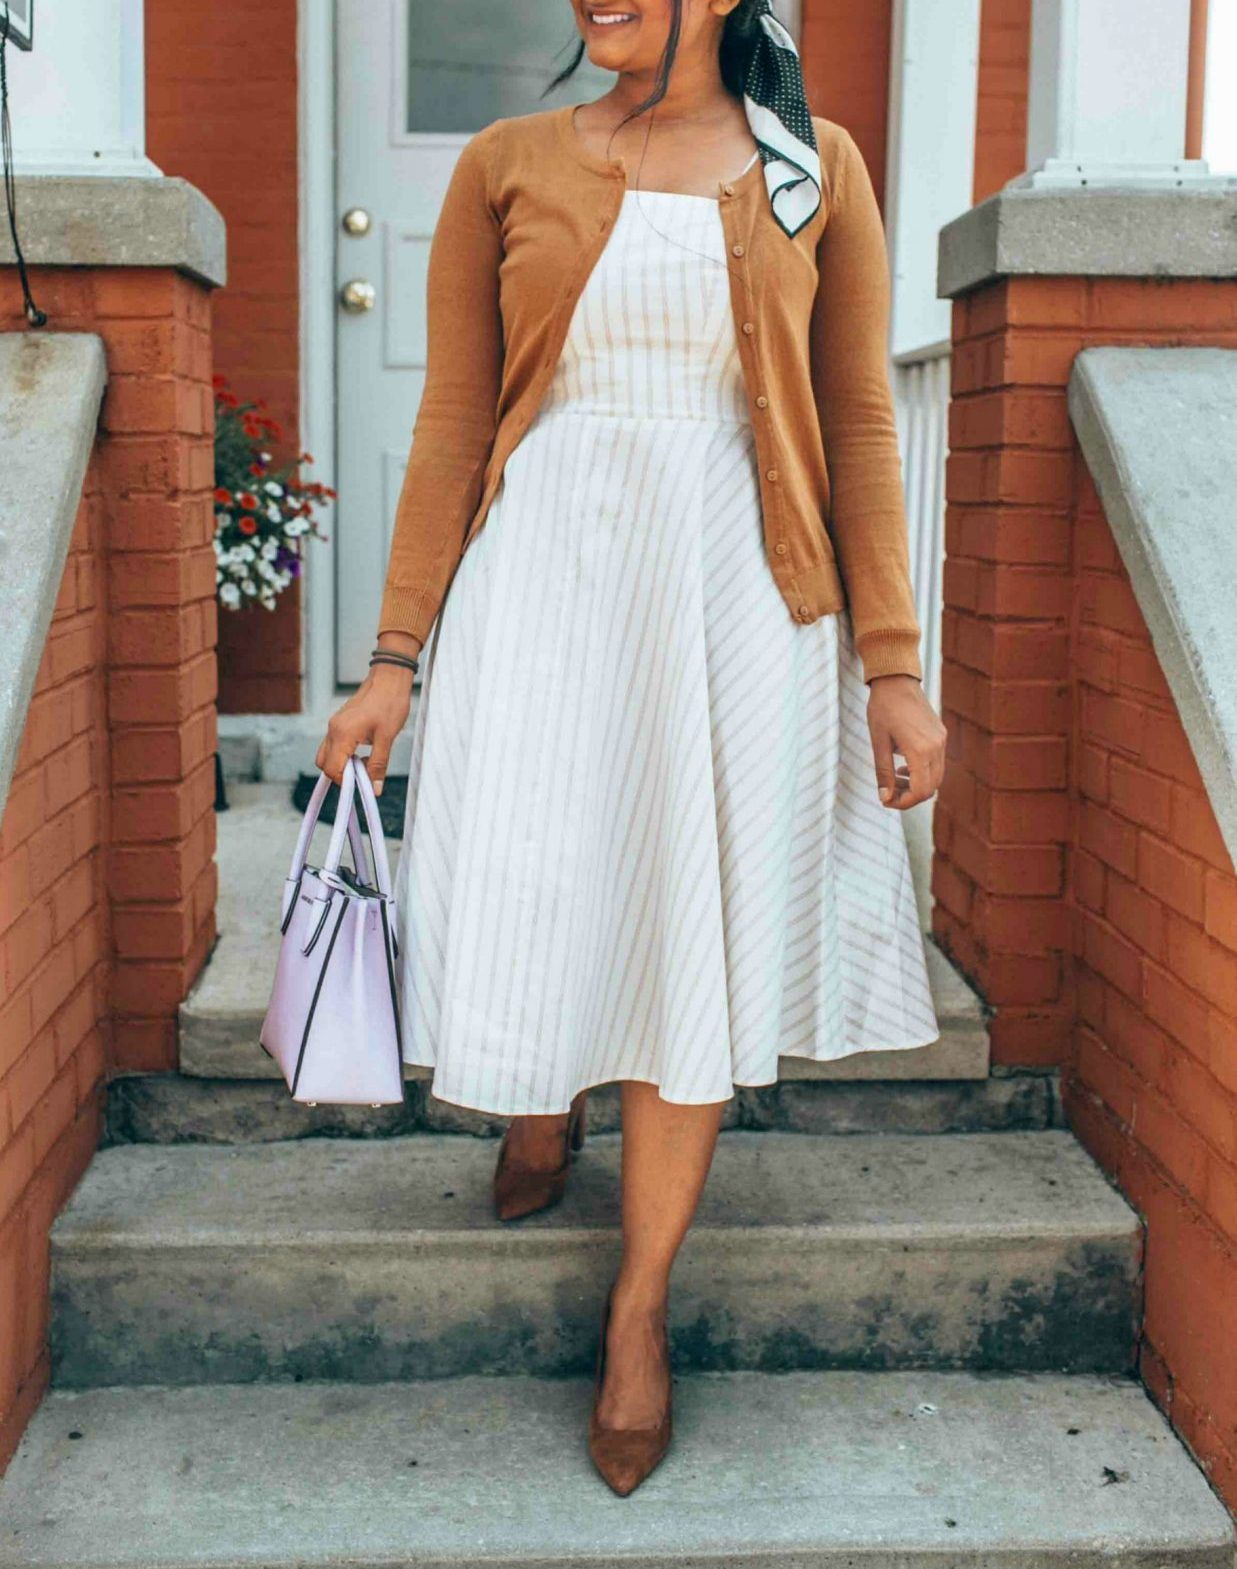 Wearing Leith Fit & Flare Dress 6 - Leith White Fit & Flare Dress styled by popular US modest fashion blogger, Dreaming Loud